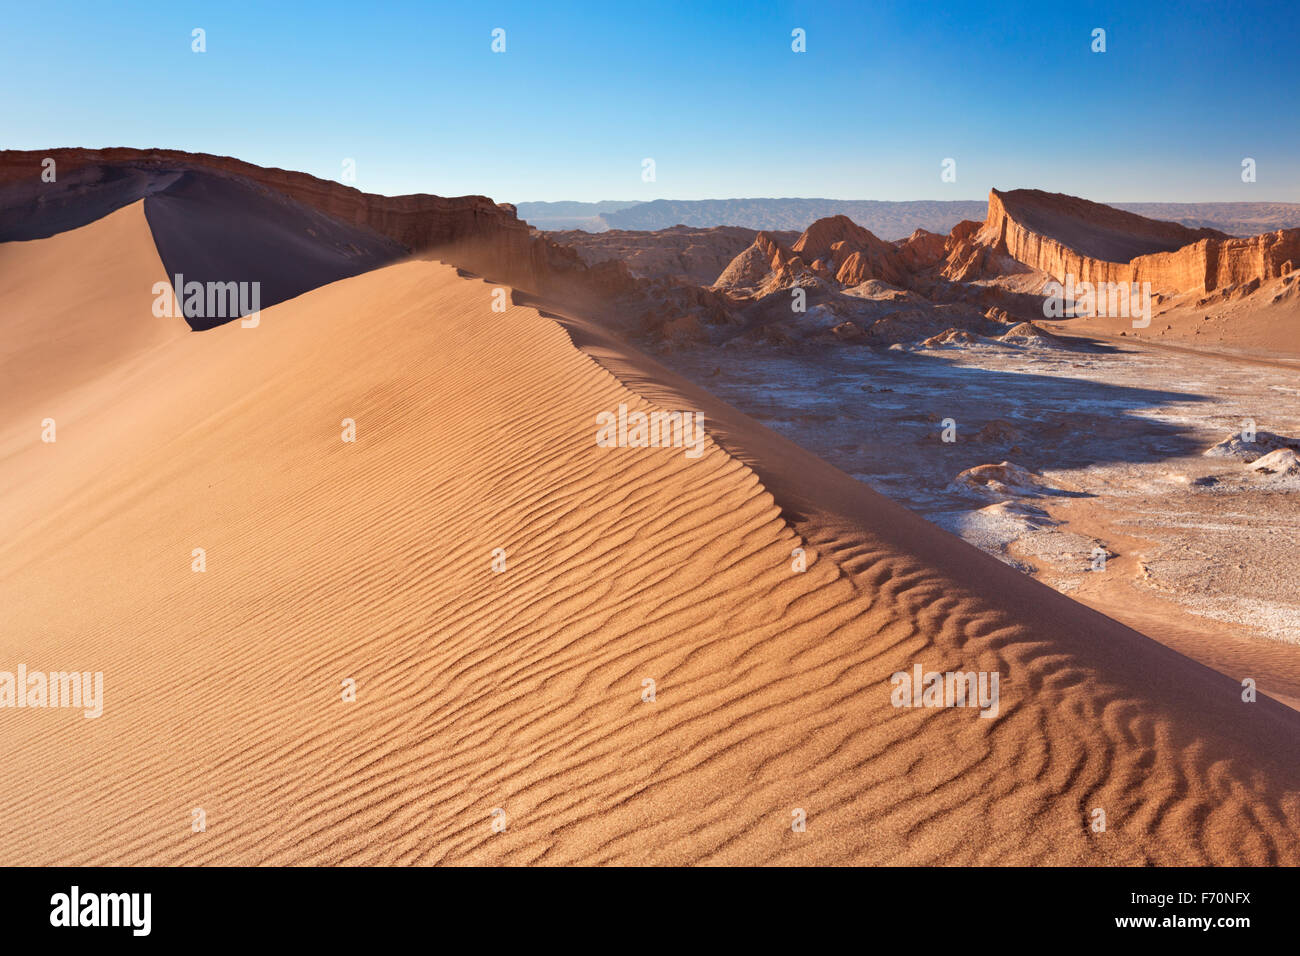 A high sand dune and distant rock formations. Photographed in the Valle de la Luna in the Atacama Desert, northern - Stock Image